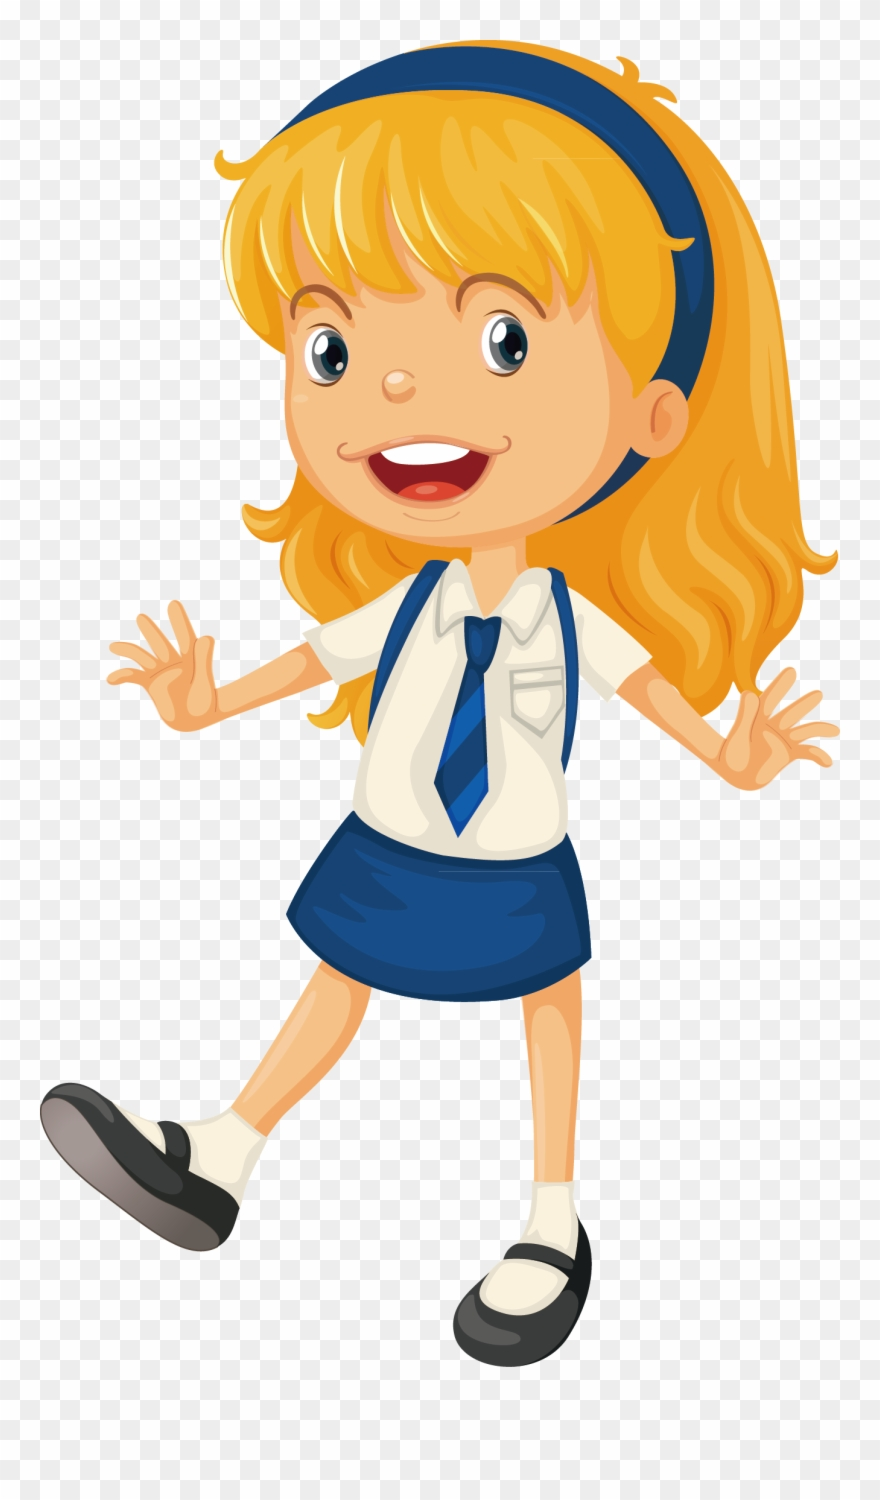 Animation Schools, School Uniform Girls, Starting School.